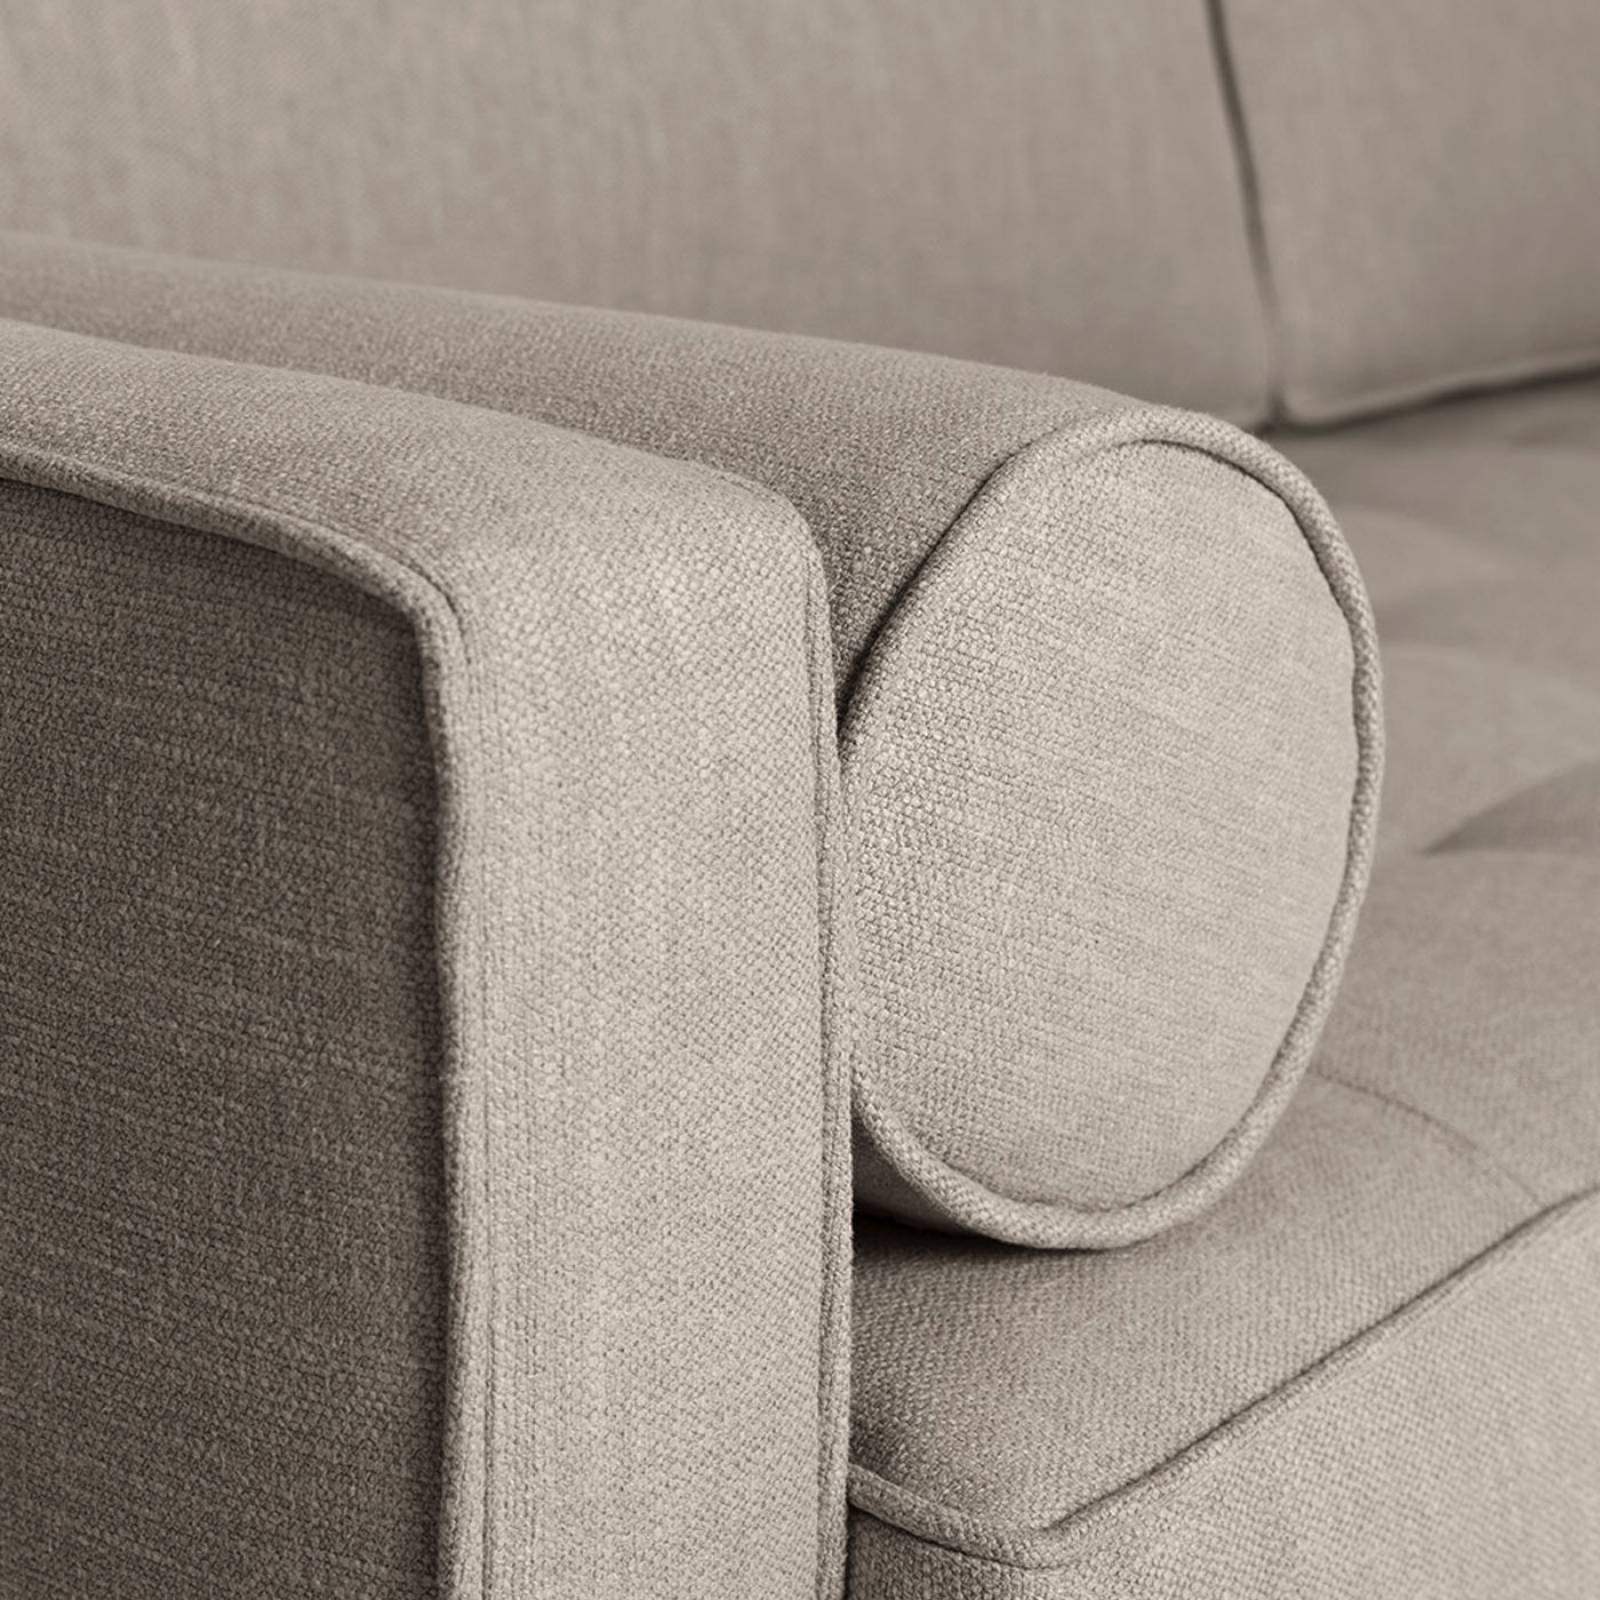 Swyft - Model 02 Linen 2 Seater Sofa - Pumice thumbnails